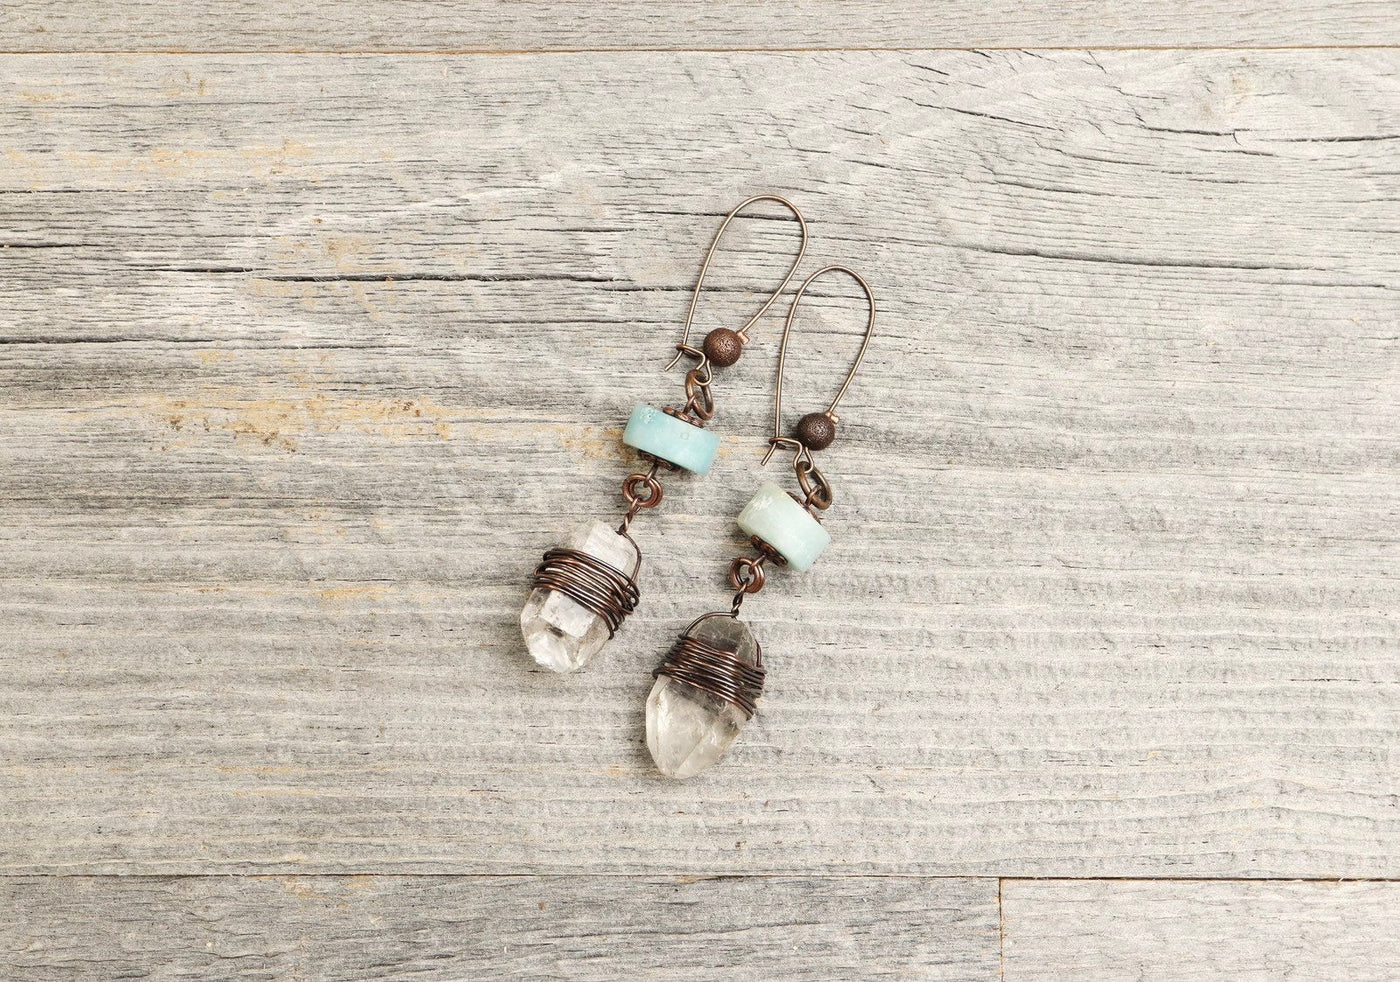 Amazonite Quartz Crystal Boho Gypsy Earrings - Rustic Eclectic Simple Stone Raw Dangle Tribal Bohemian Aqua Blue Copper Wired Earthy Jewelry